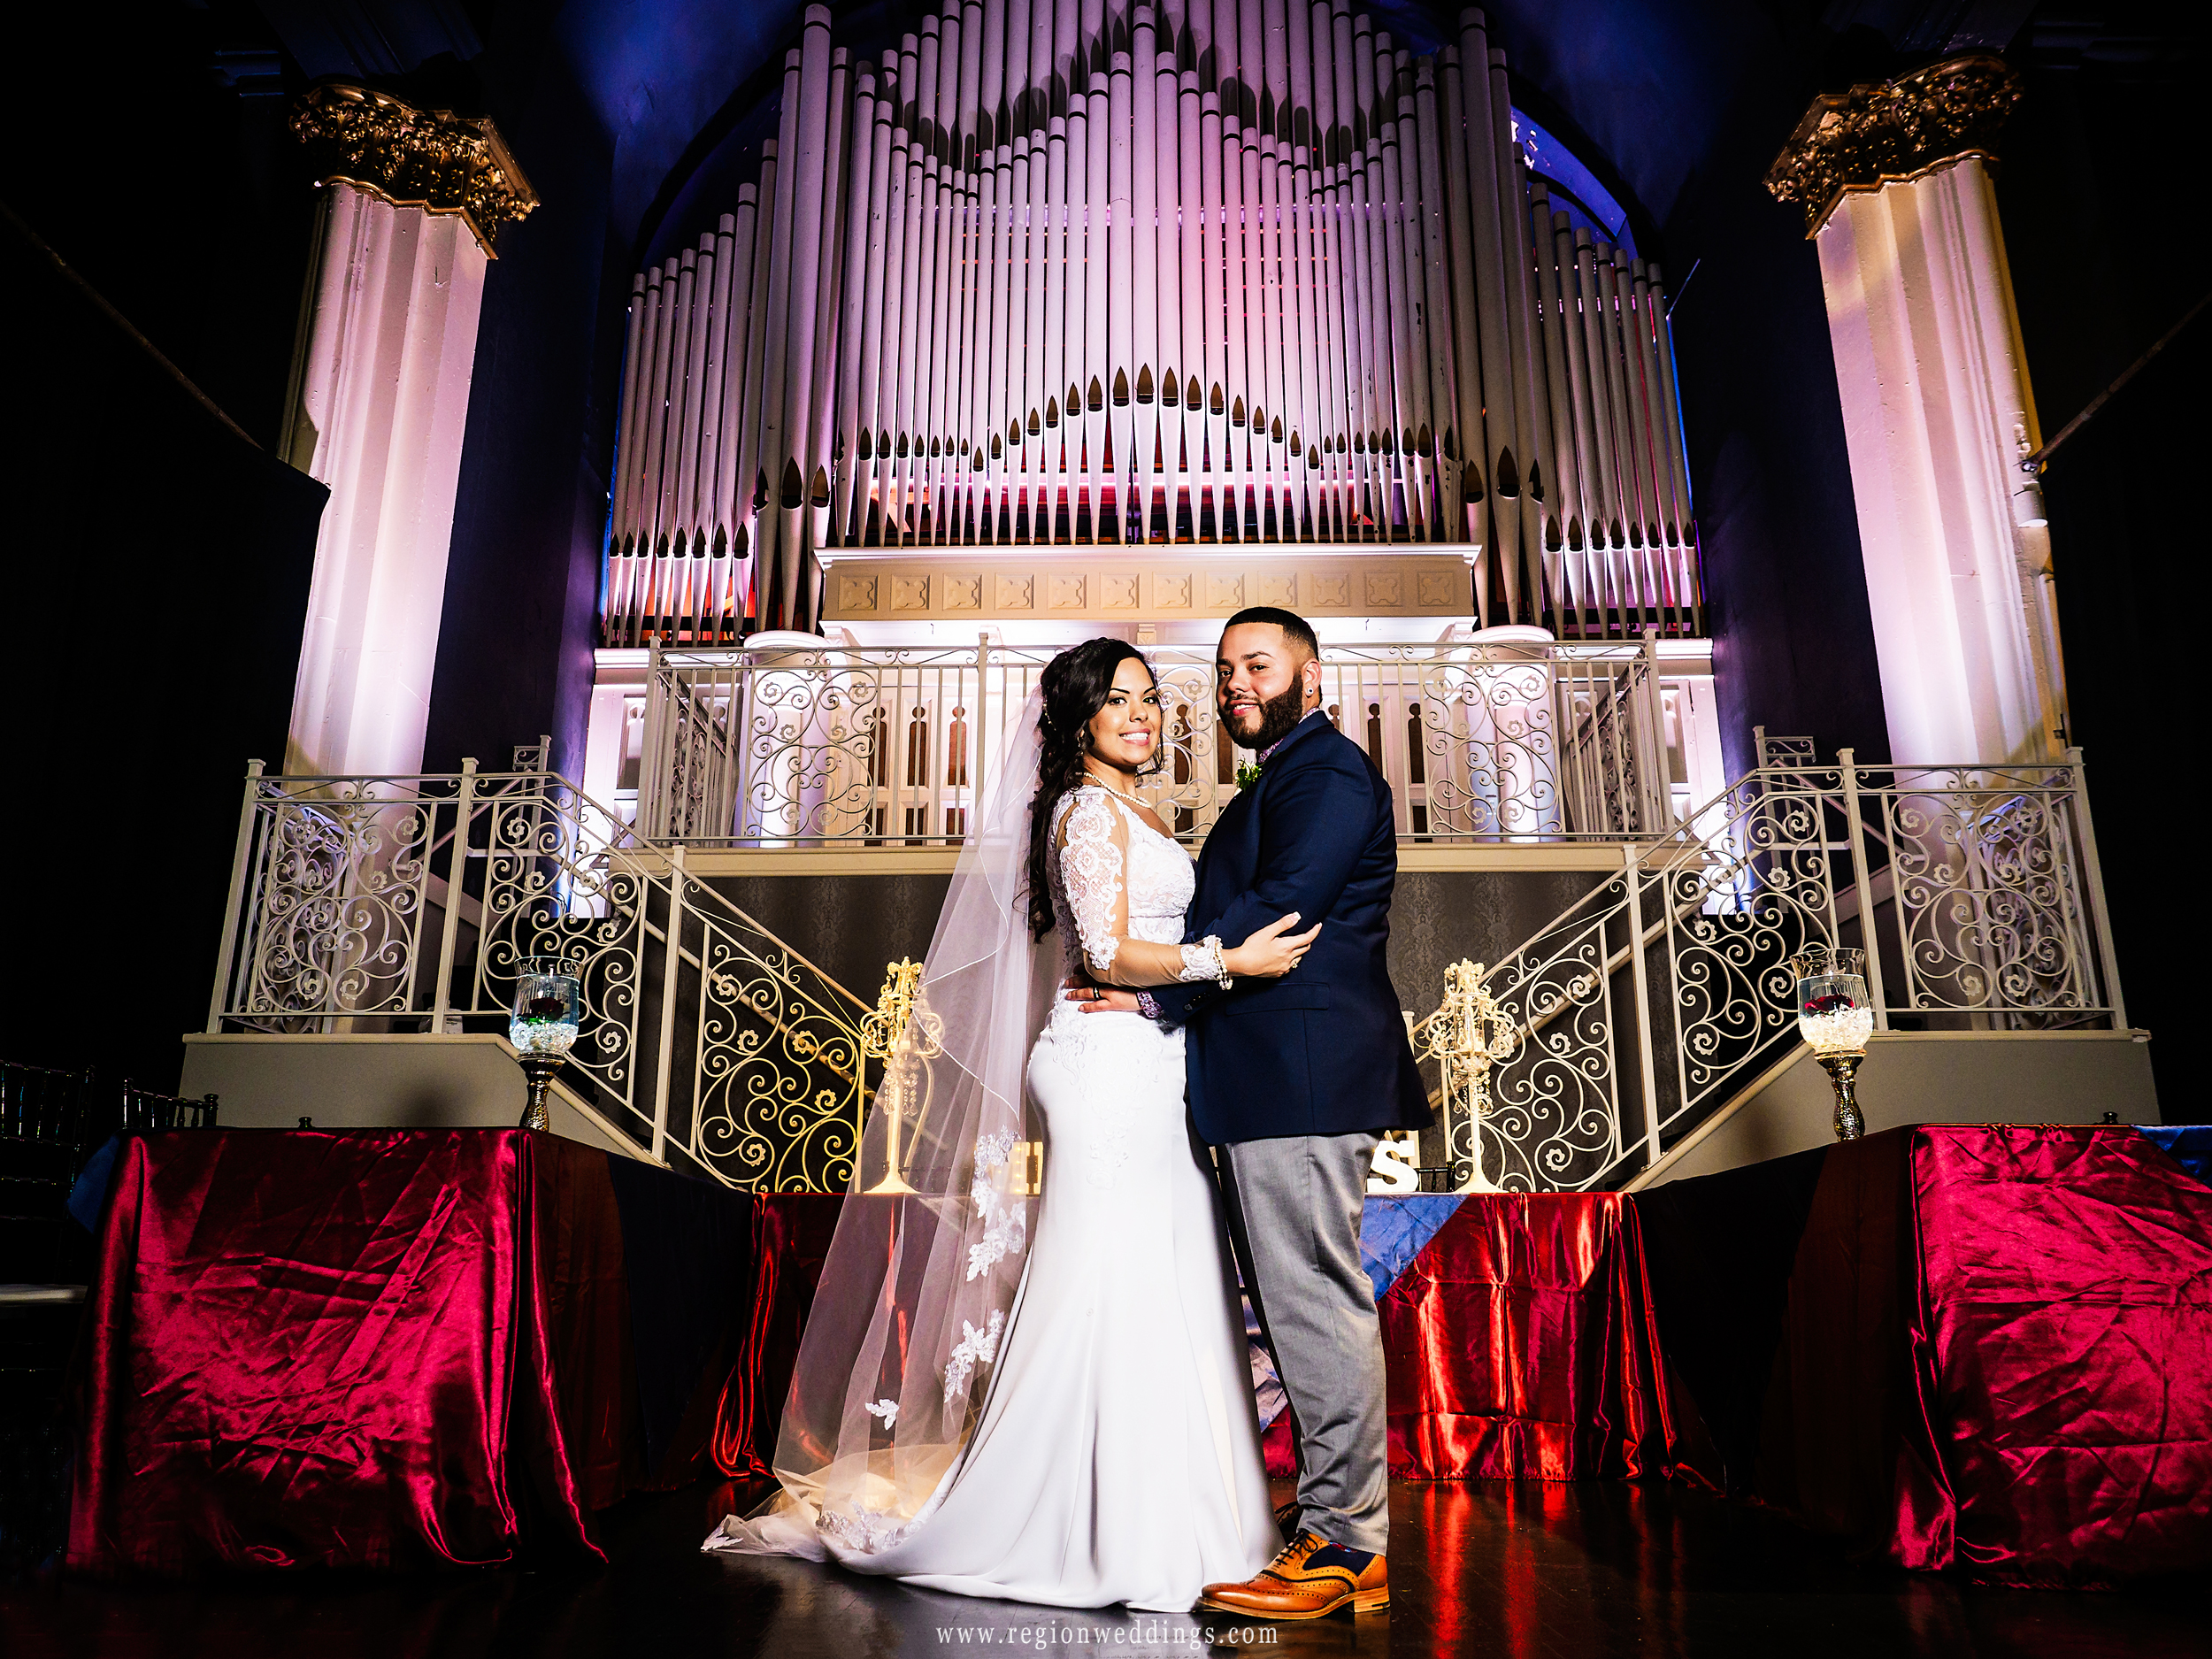 Bride and groom on stage inside Uptown Center ballroom.